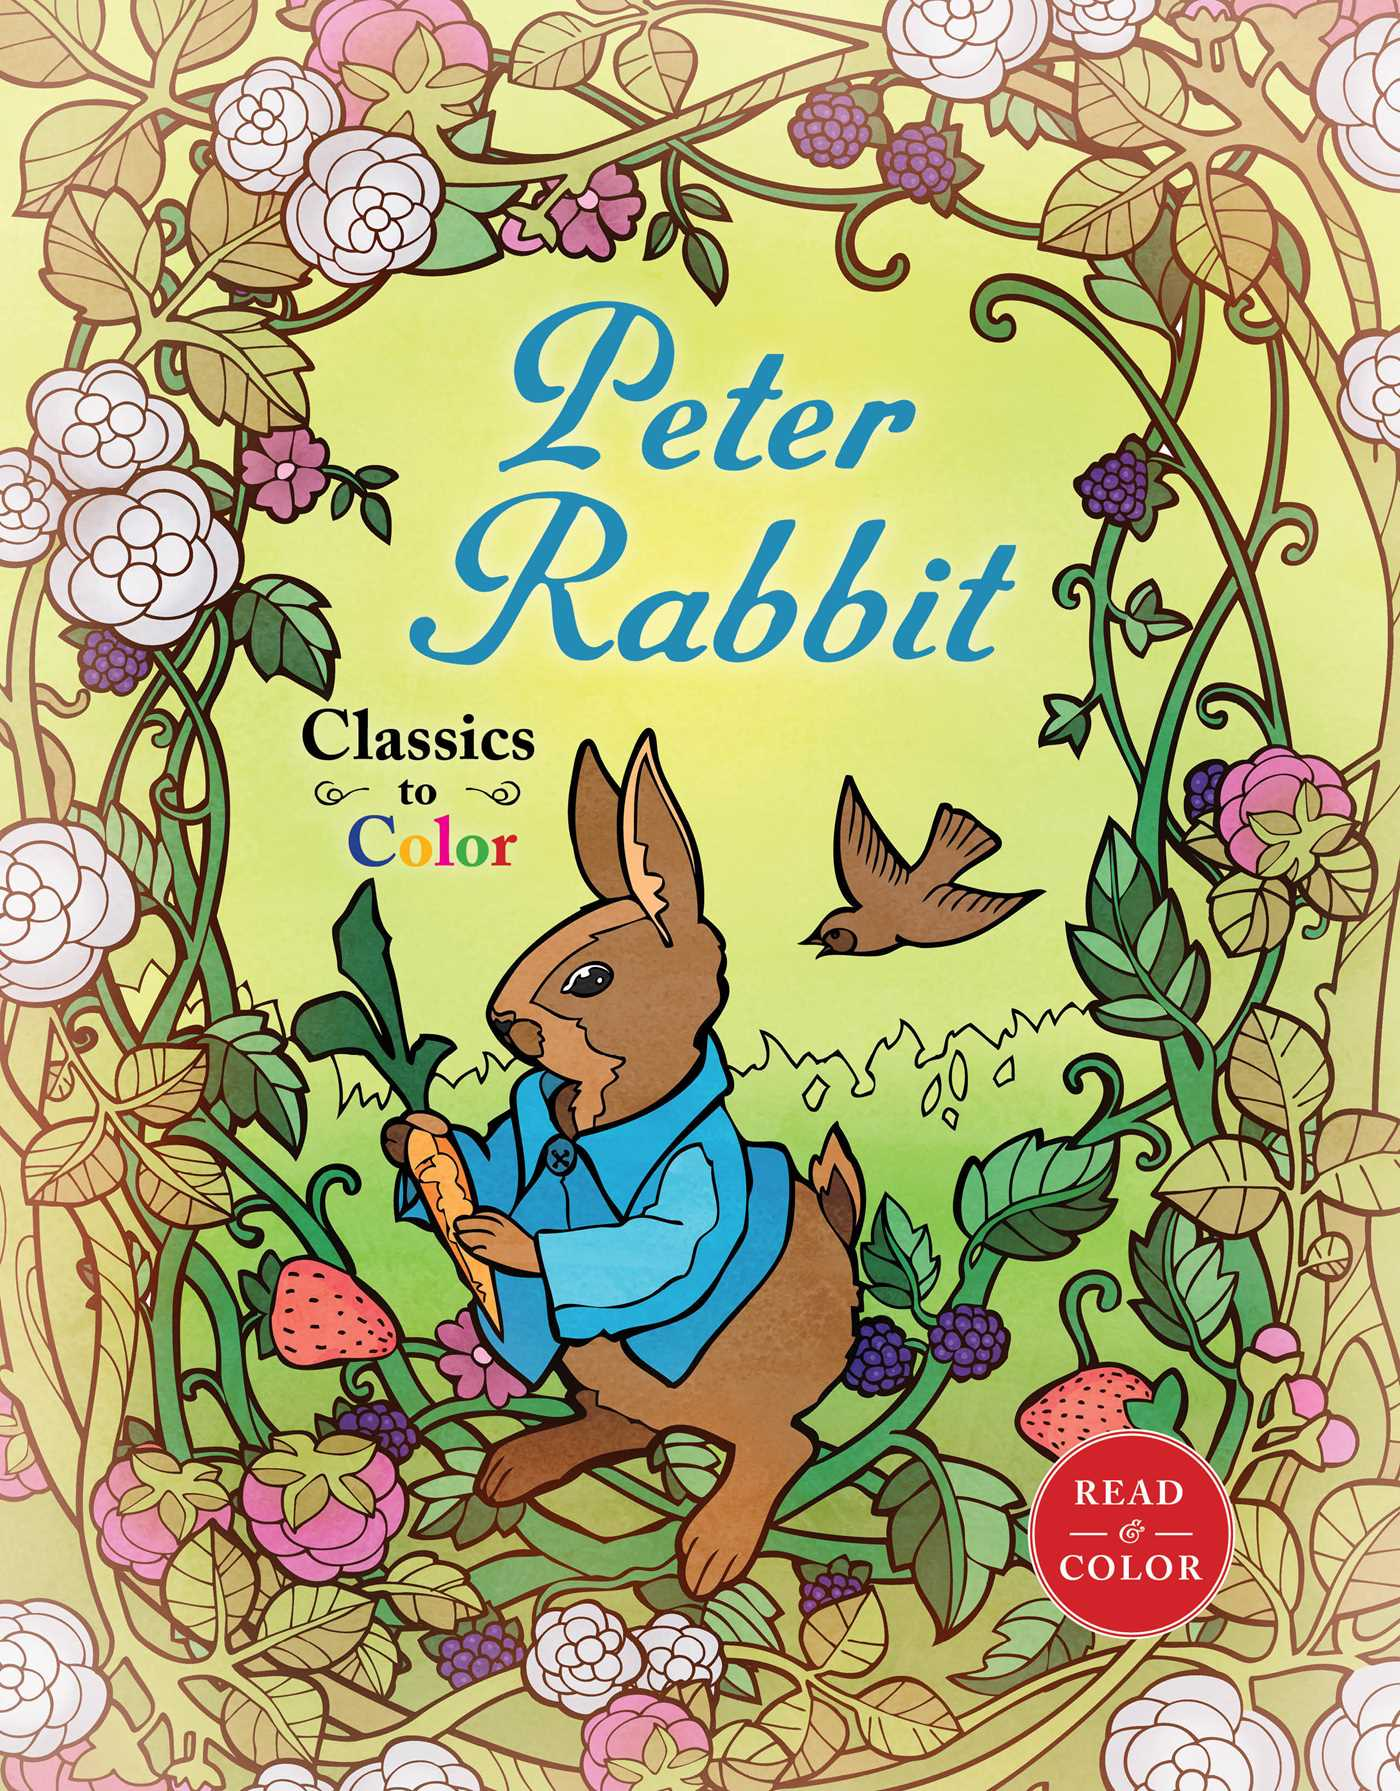 Classics To Color The Tale Of Peter Rabbit Book By Beatrix Potter Diego Jourdan Pereira Official Publisher Page Simon Schuster Uk